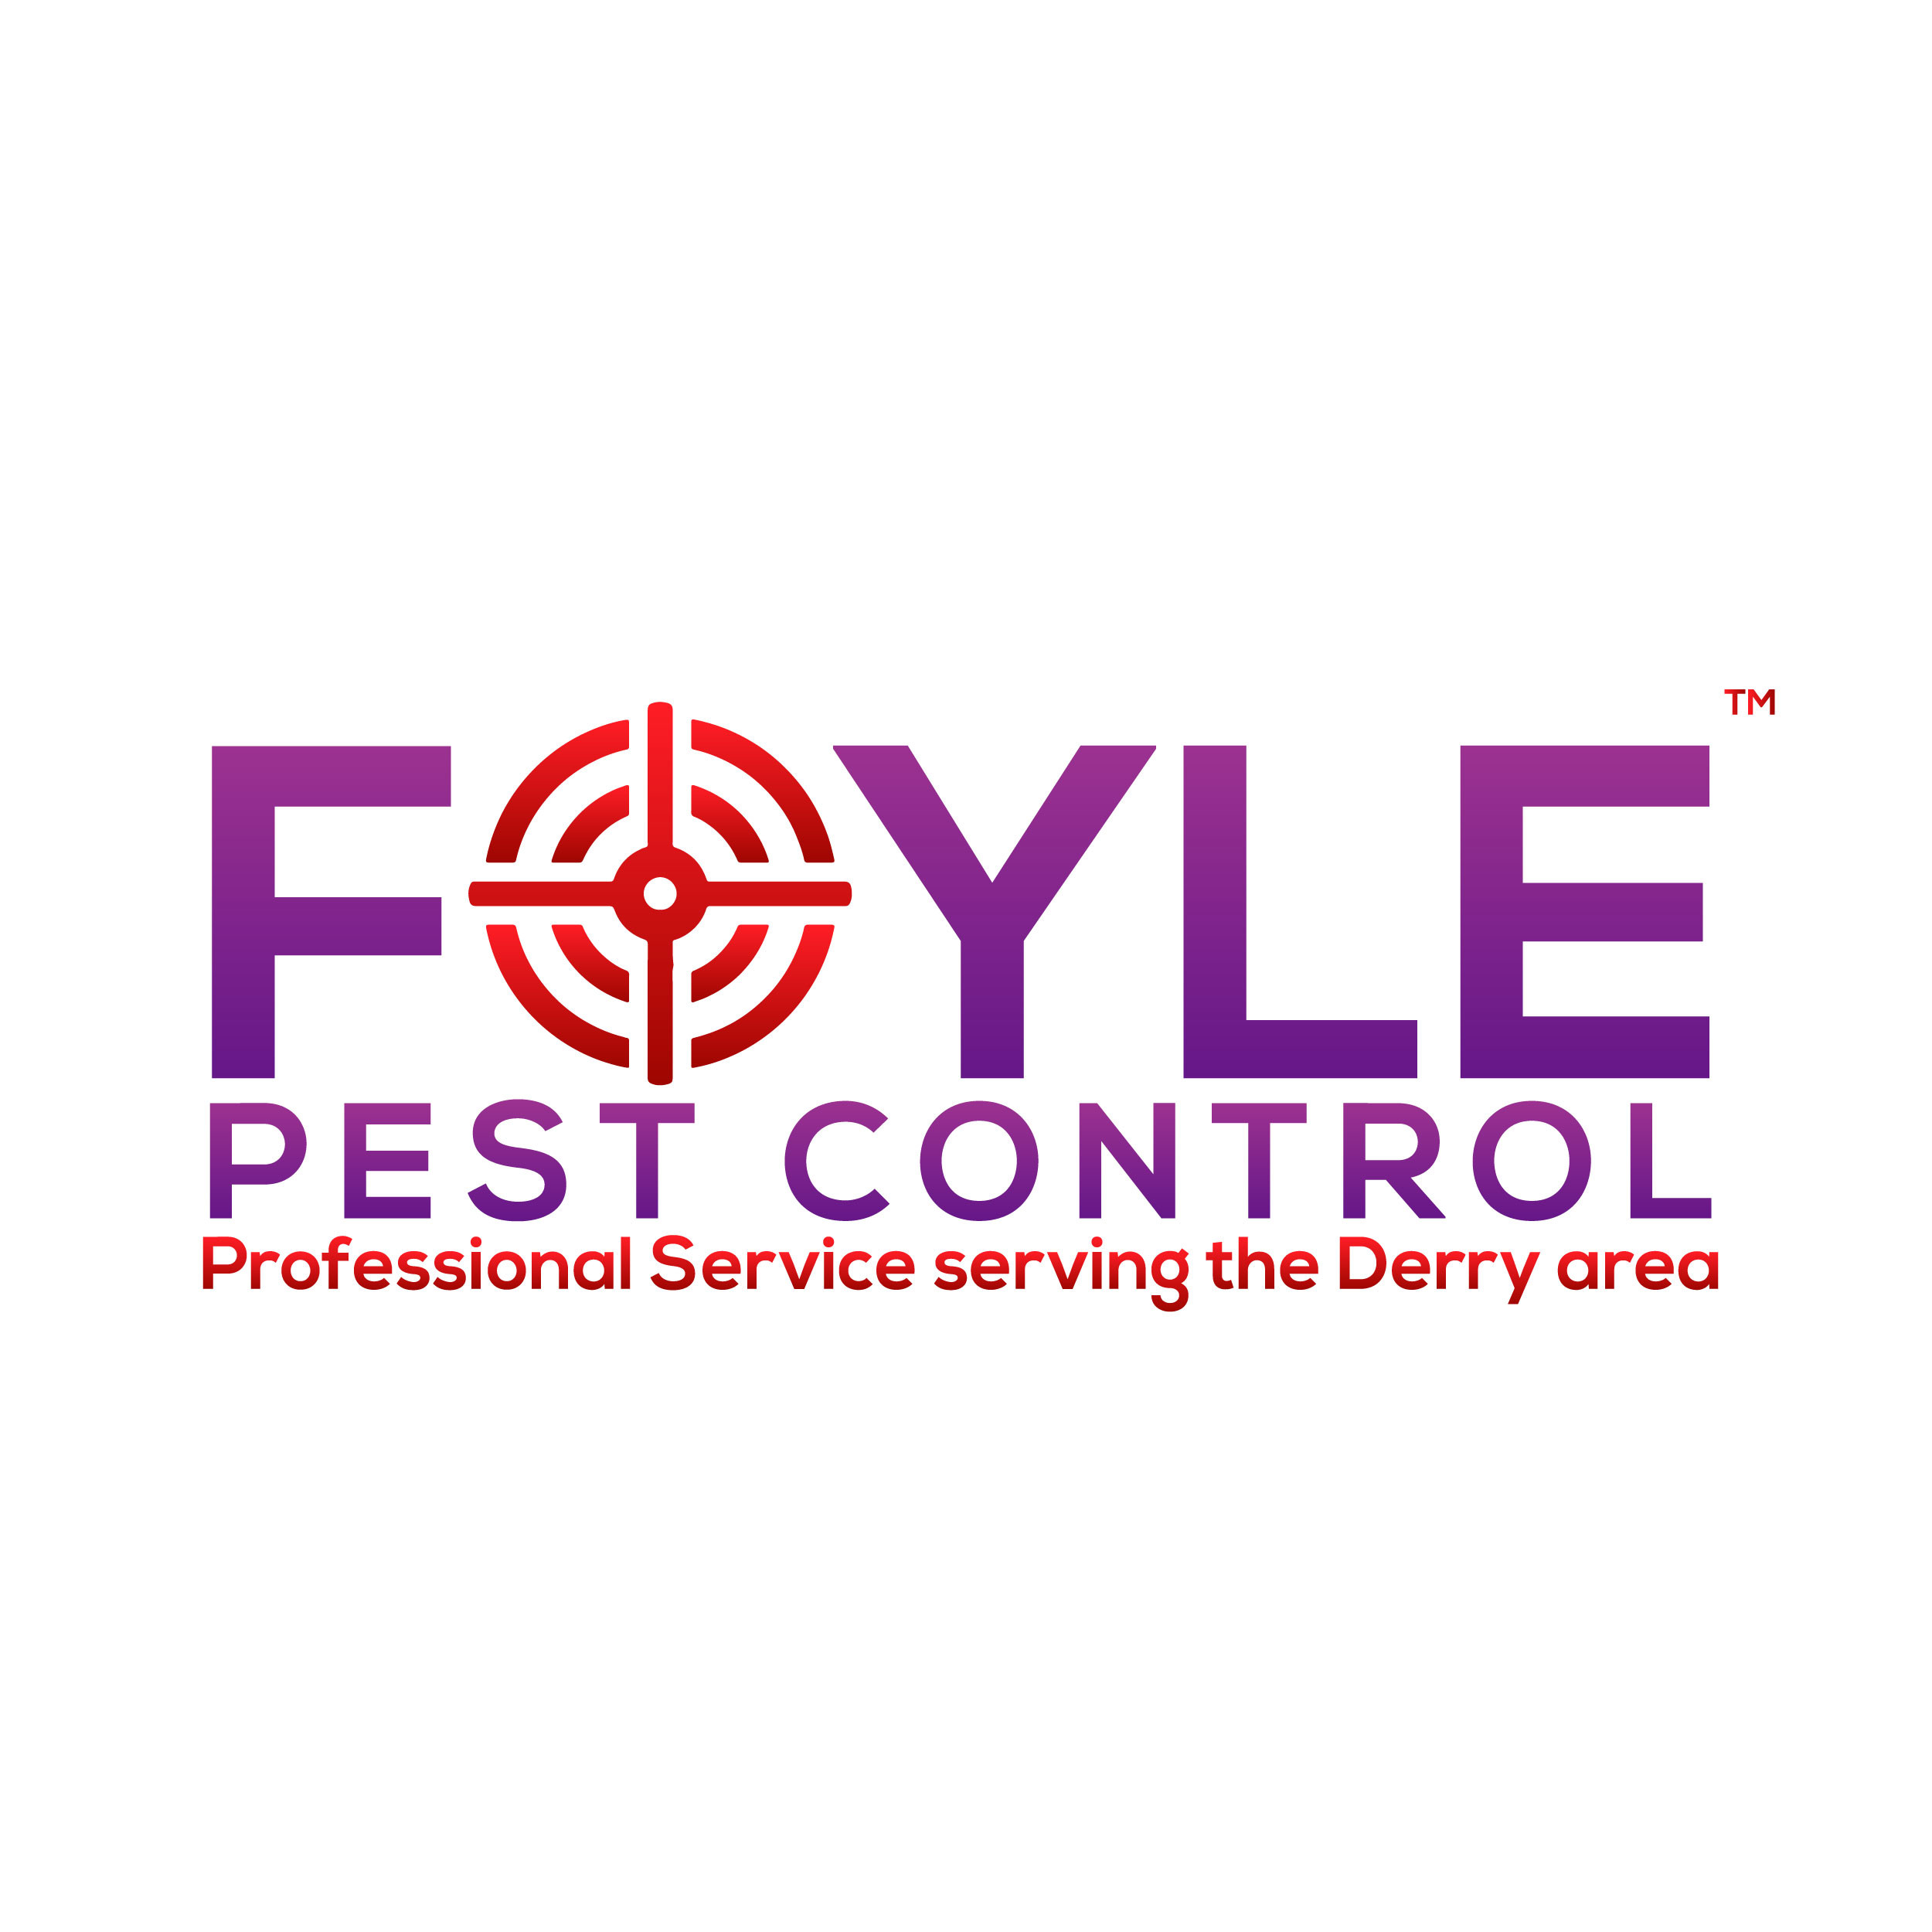 Derry Pest Control | Foyle Pest Control | Northern Ireland